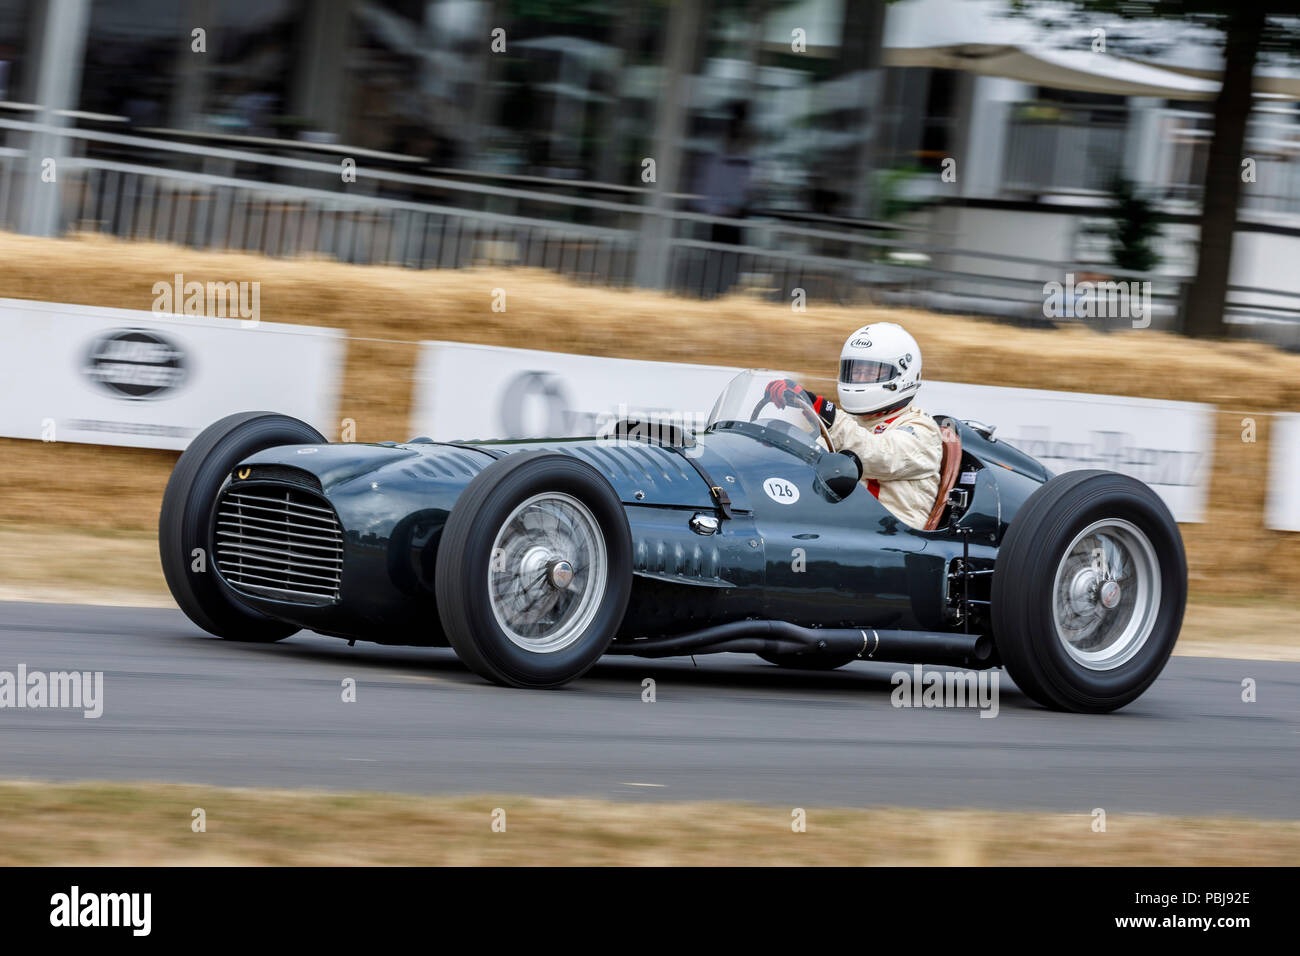 1950 BRM Type 15 V16 with driver Doug Hill at the 2018 Goodwood Festival of Speed, Sussex, UK. - Stock Image